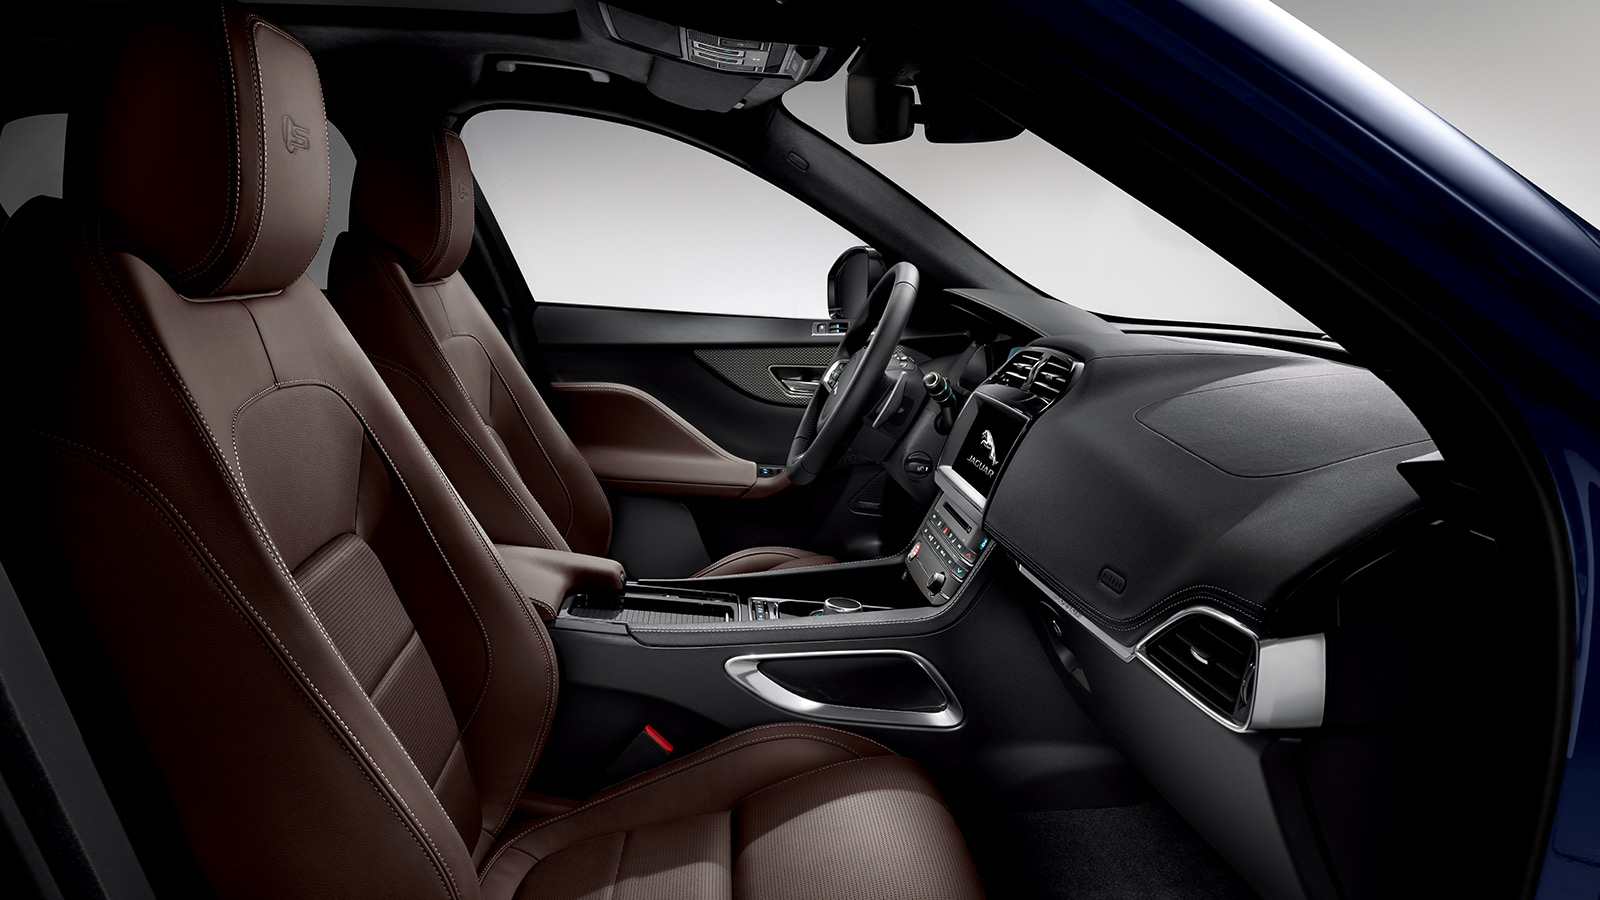 F-PACE Interior shot.